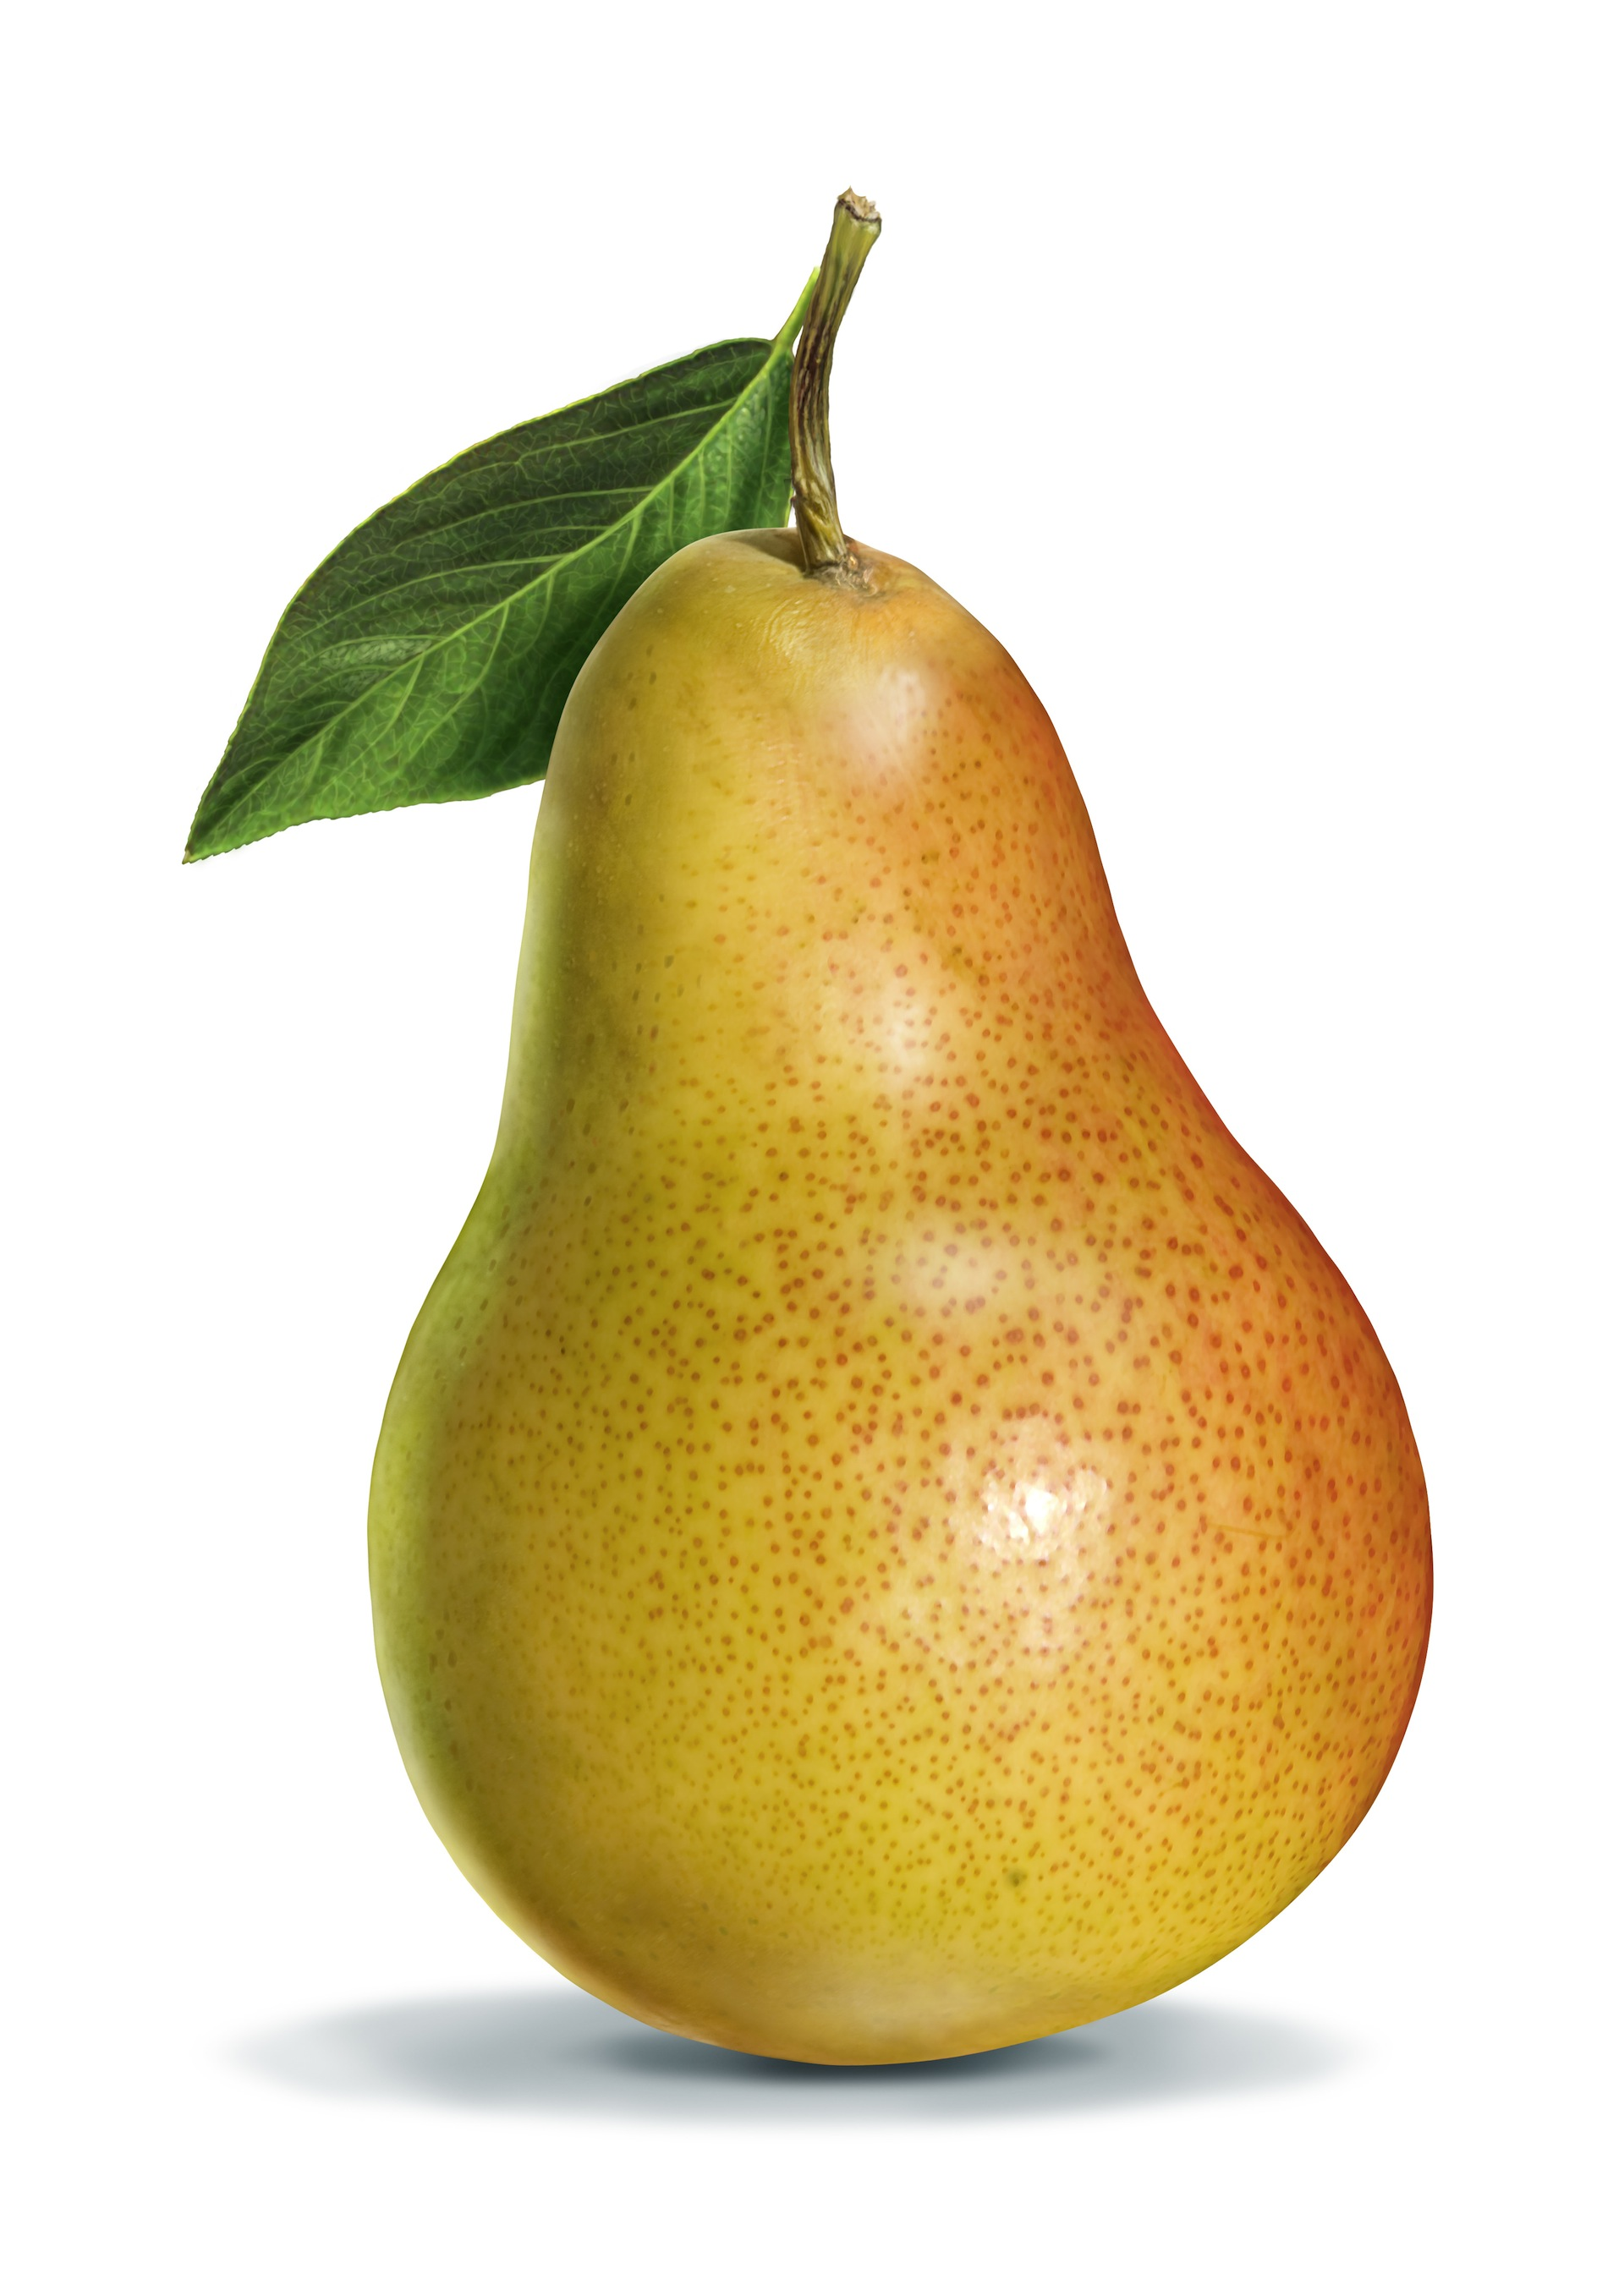 HQ Pear Wallpapers | File 429.03Kb